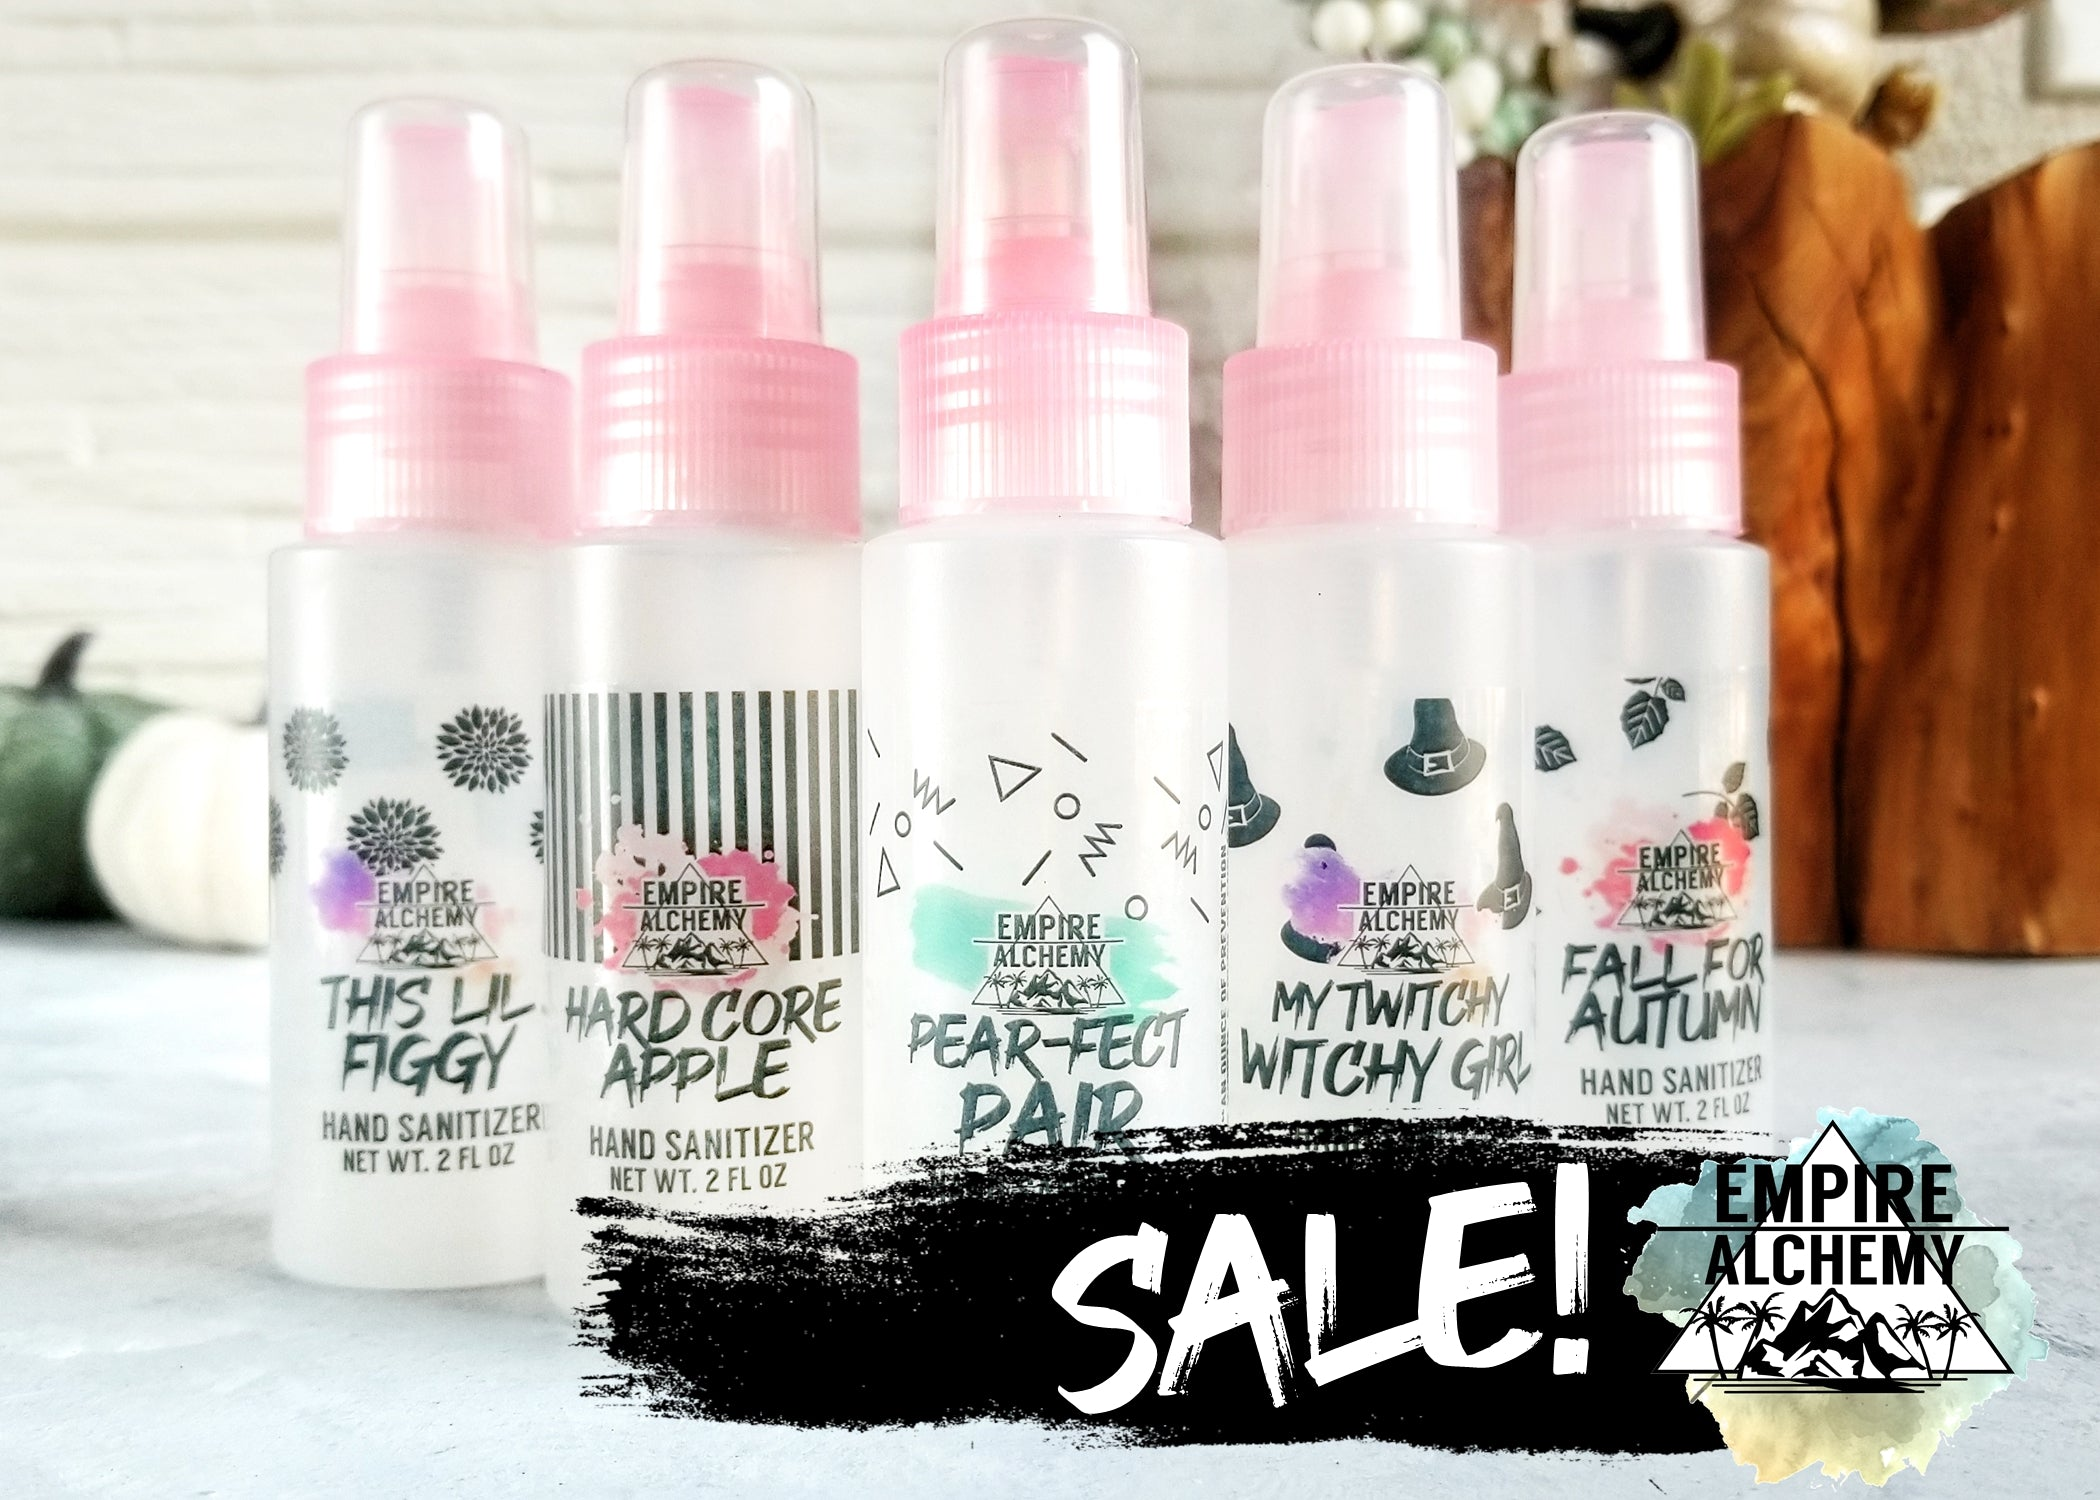 TWITCHY WITCHY GIRL Hand Sanitizer SPRAY 2 oz Ready-To-Ship